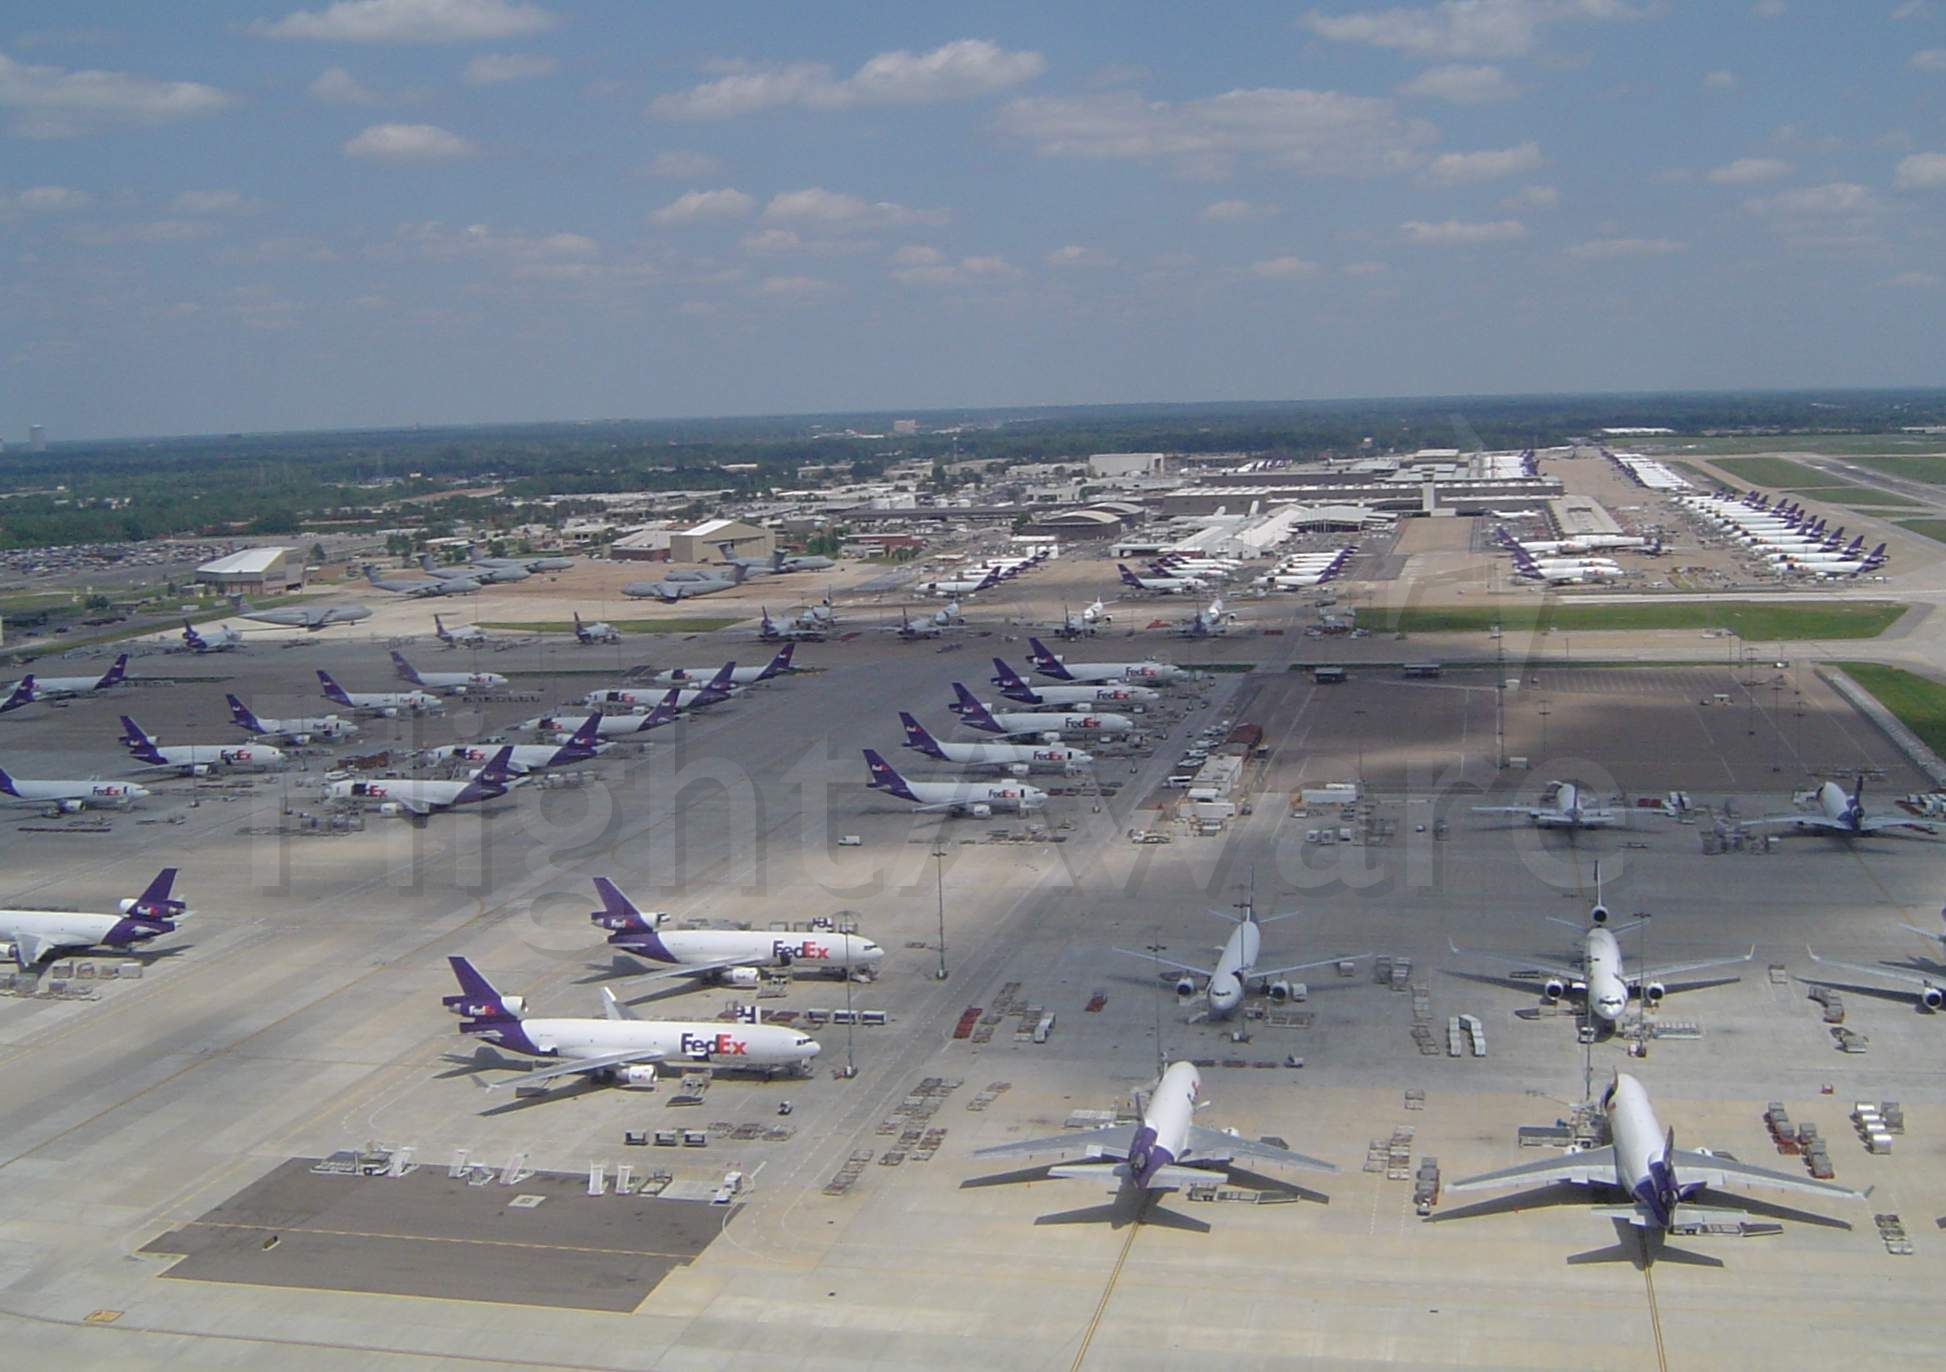 — — - A overhead view of the Awesome FedEx ramps at Memphis TN 2008 ....Photo by Martin Dixon